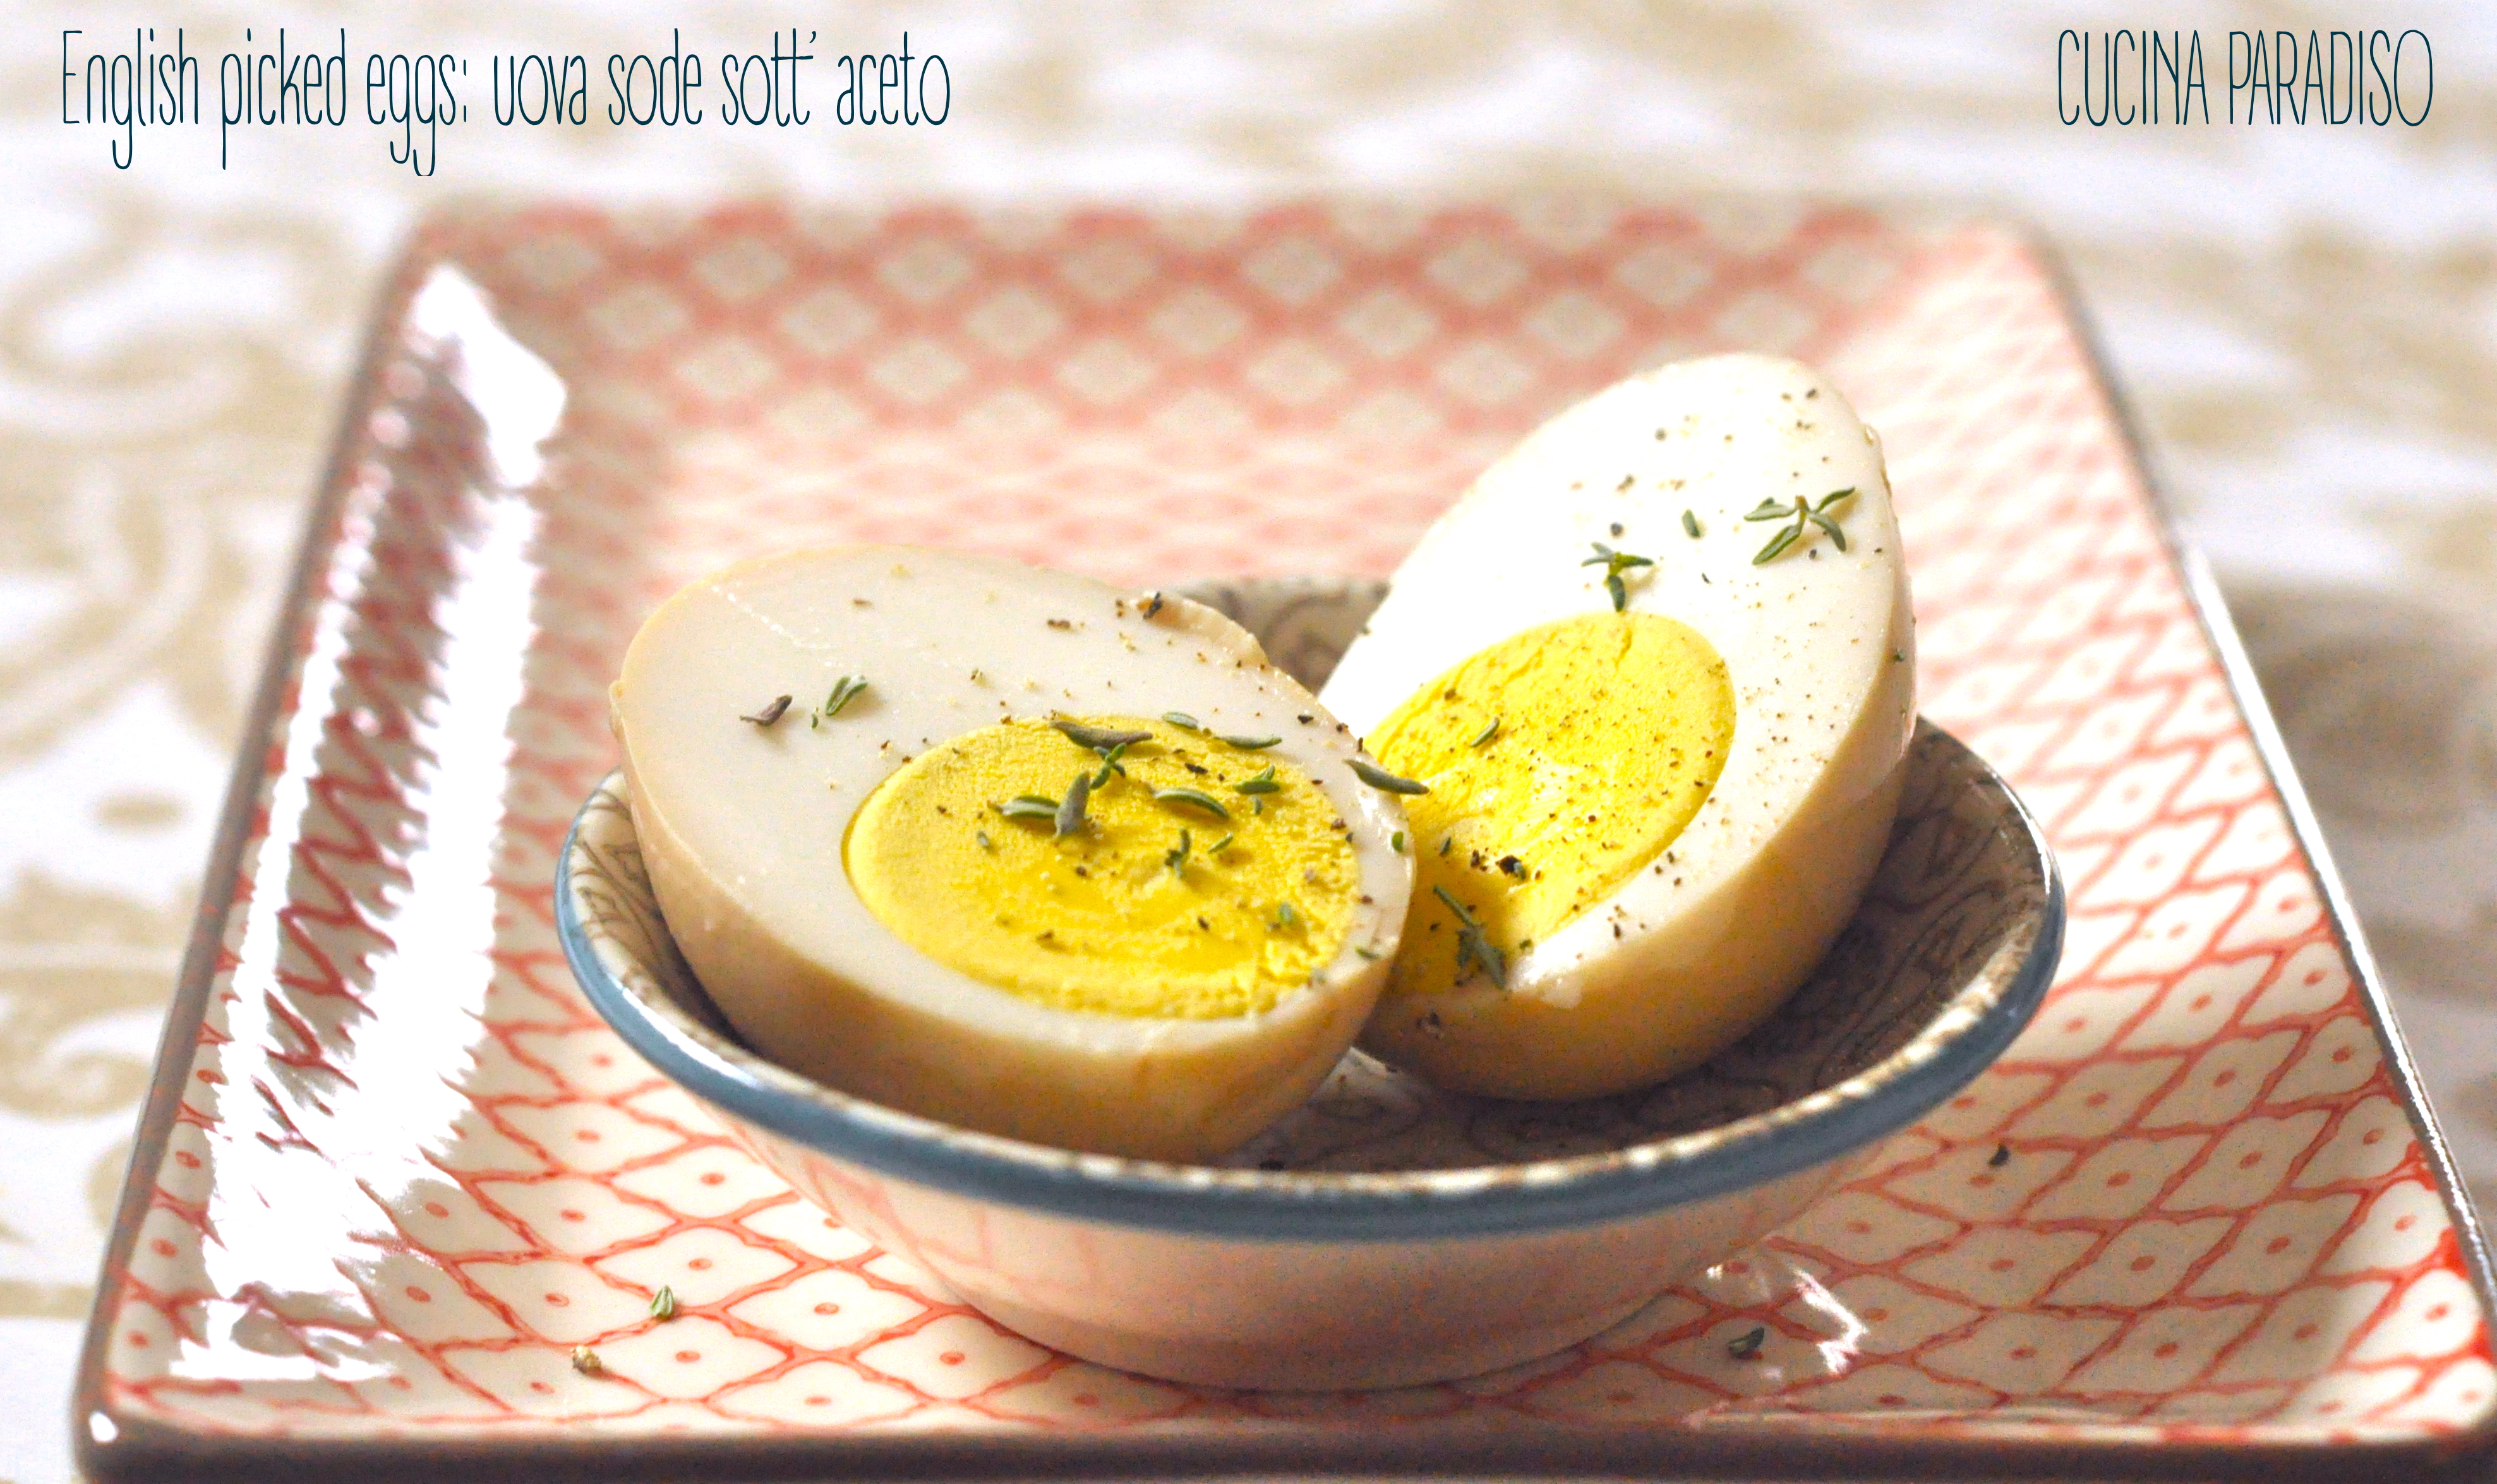 english-picked-eggs-uova-sode-sott-aceto5